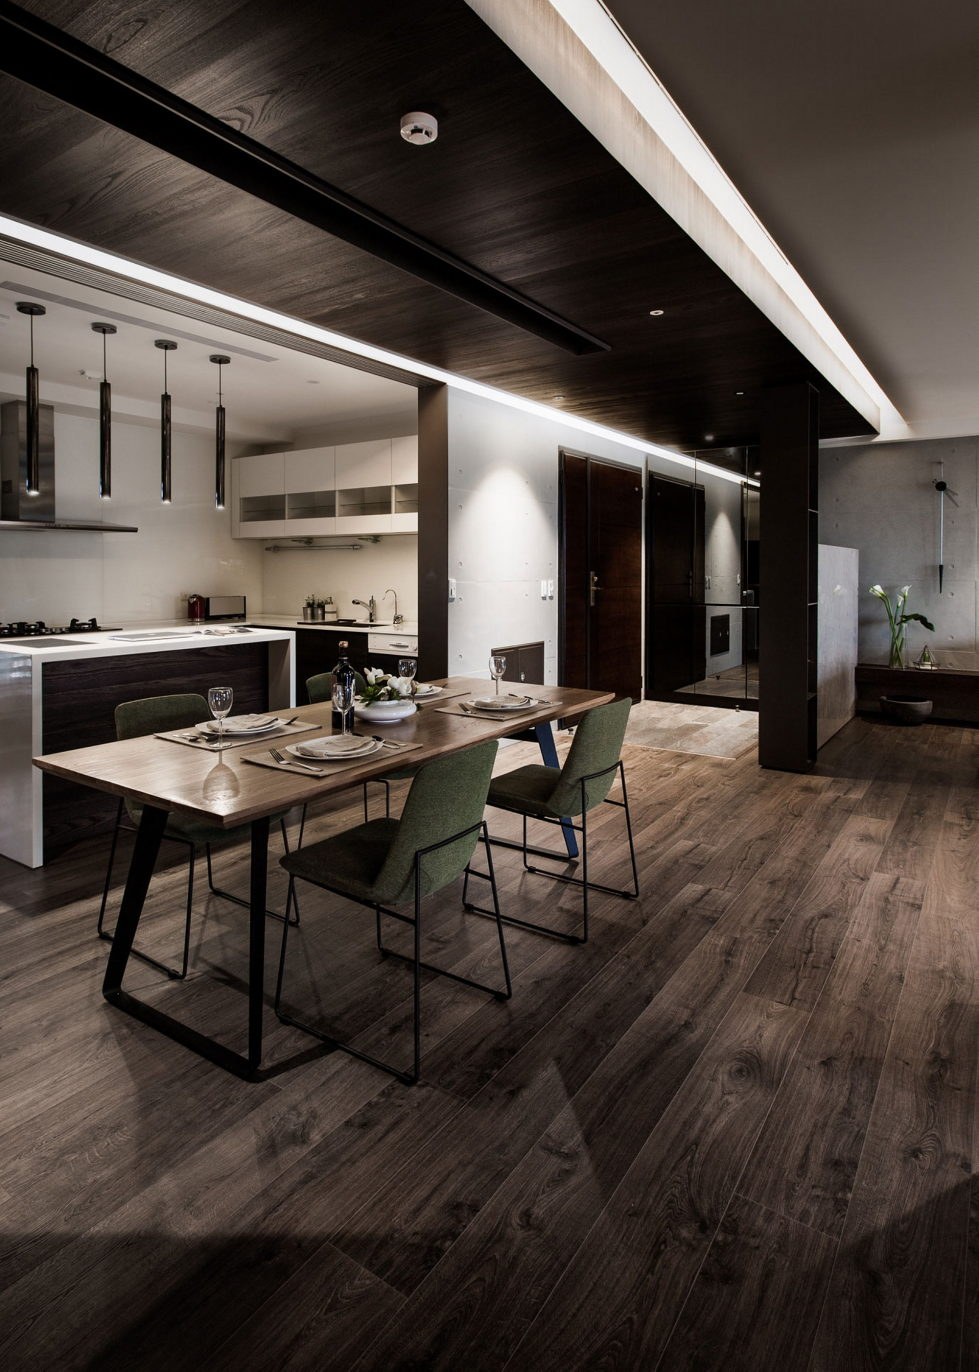 Modern Apartments In The Minimalism Style At Taiwan 15